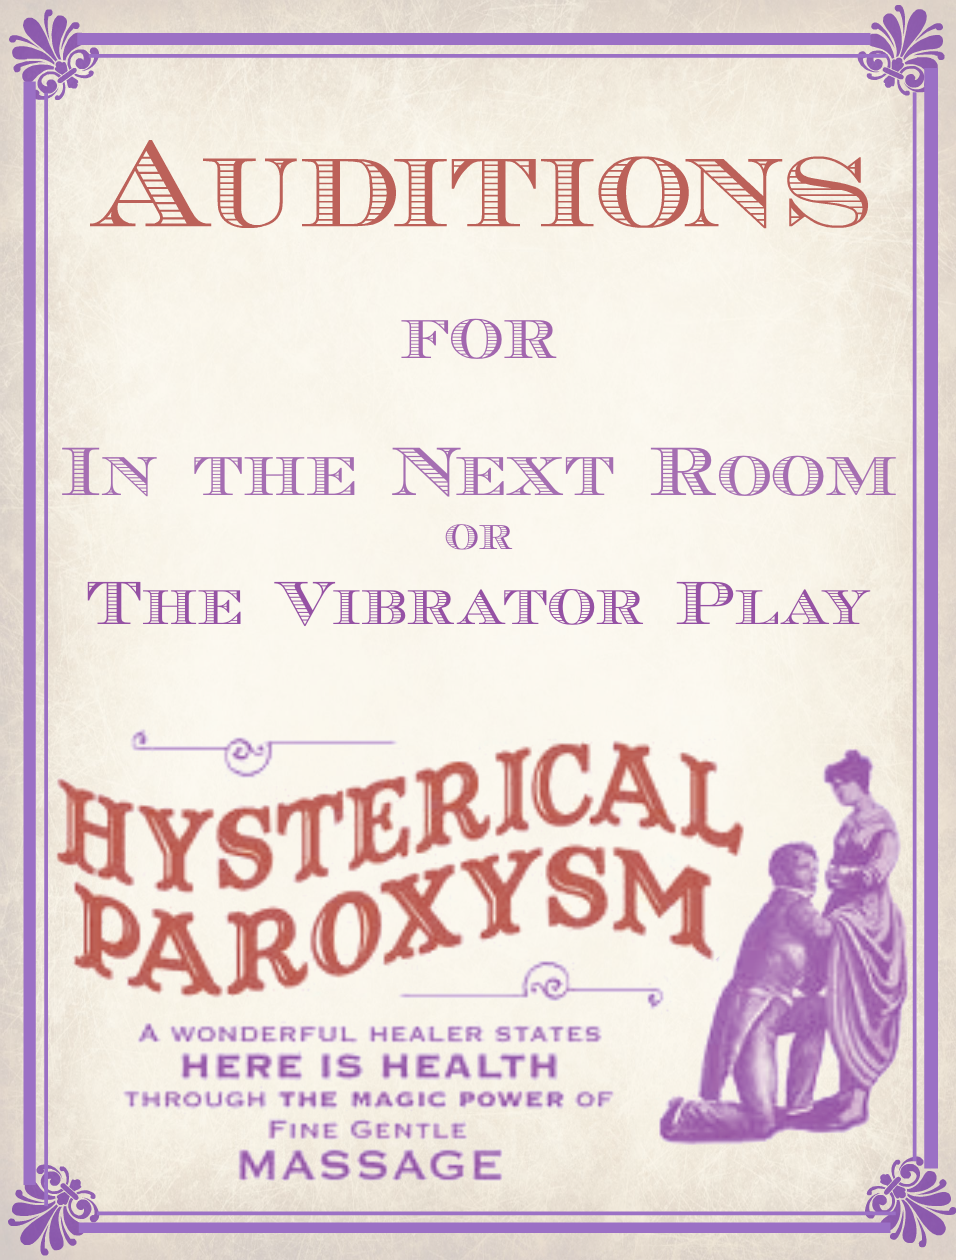 Auditions for In The Next Room